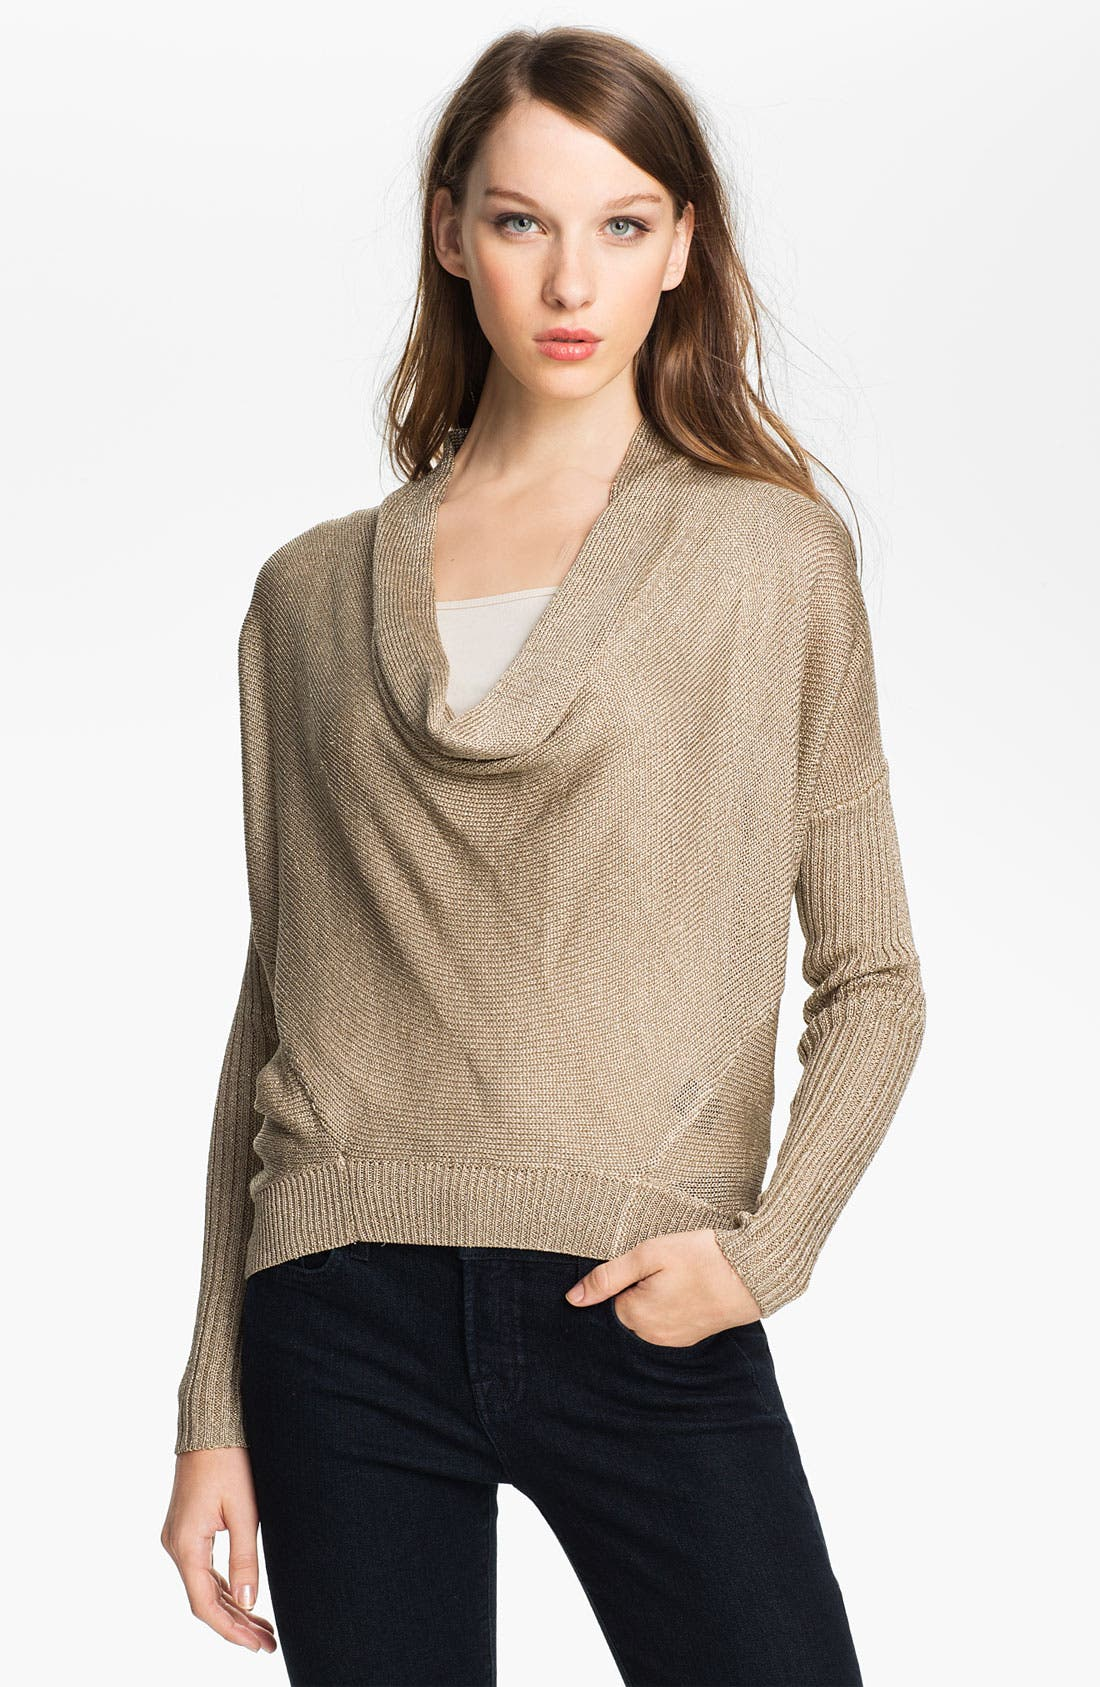 Alternate Image 1 Selected - Vince Camuto High Low Metallic Sweater